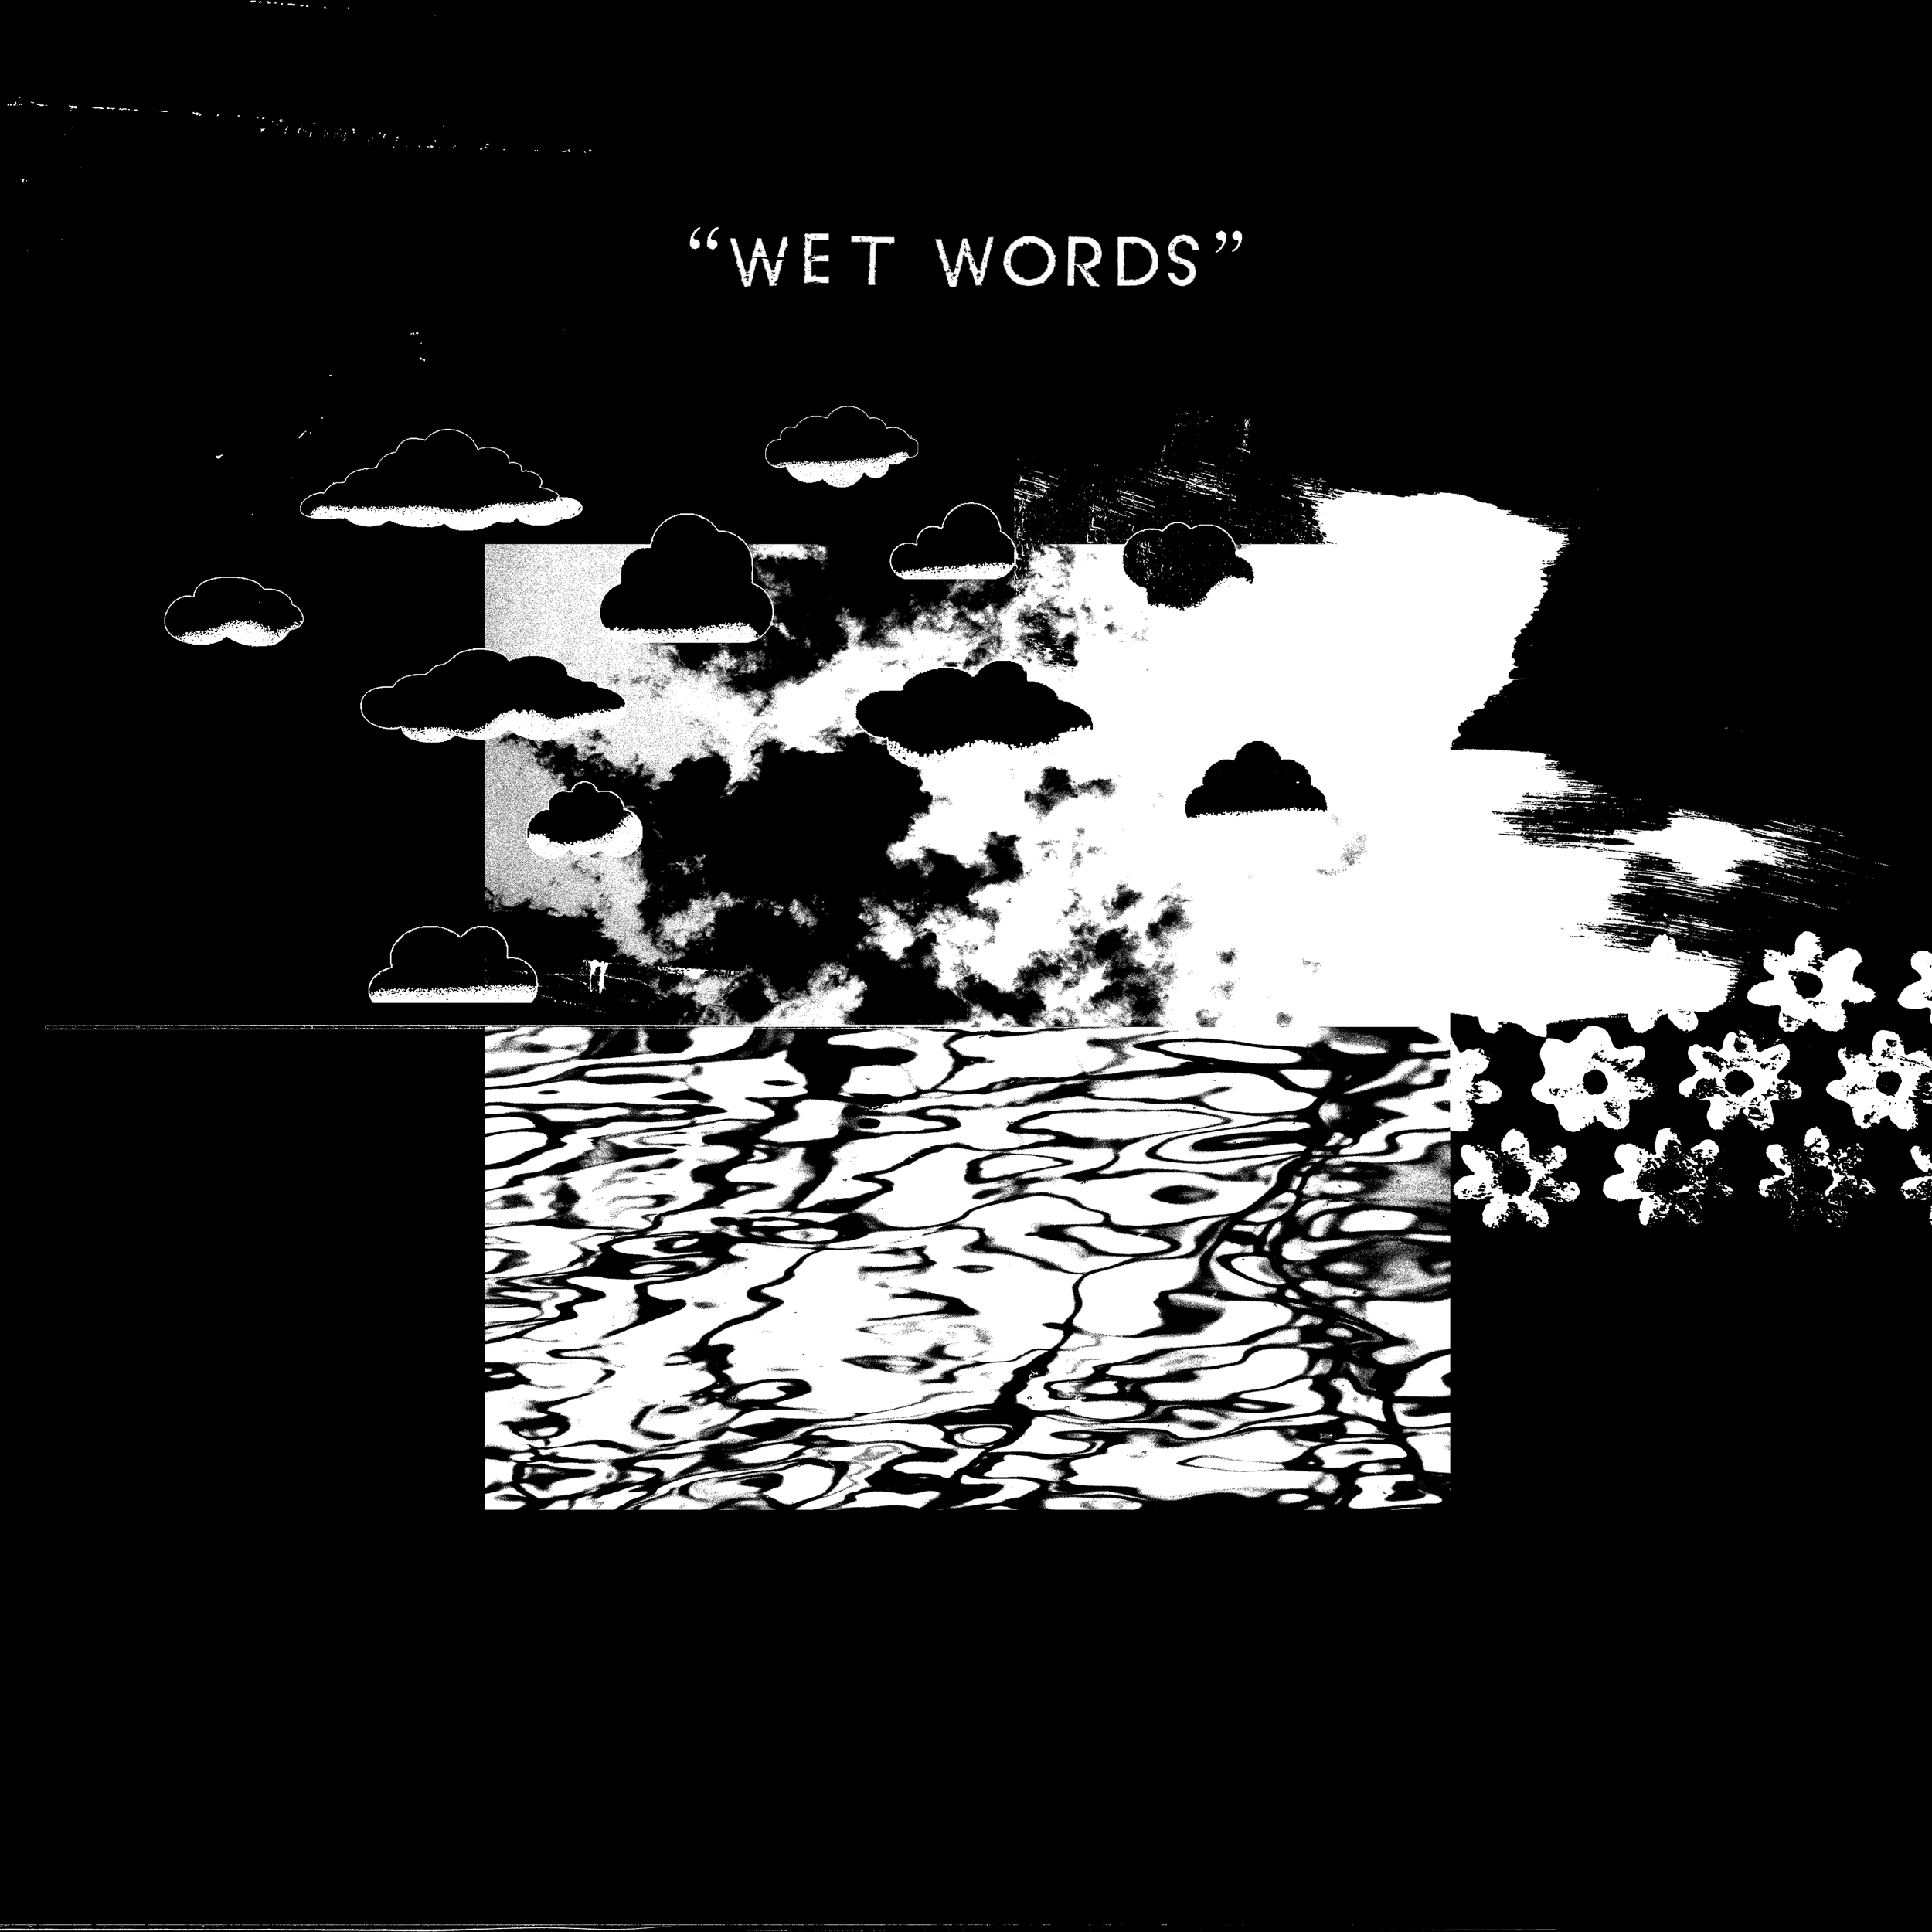 wetwords copy.png